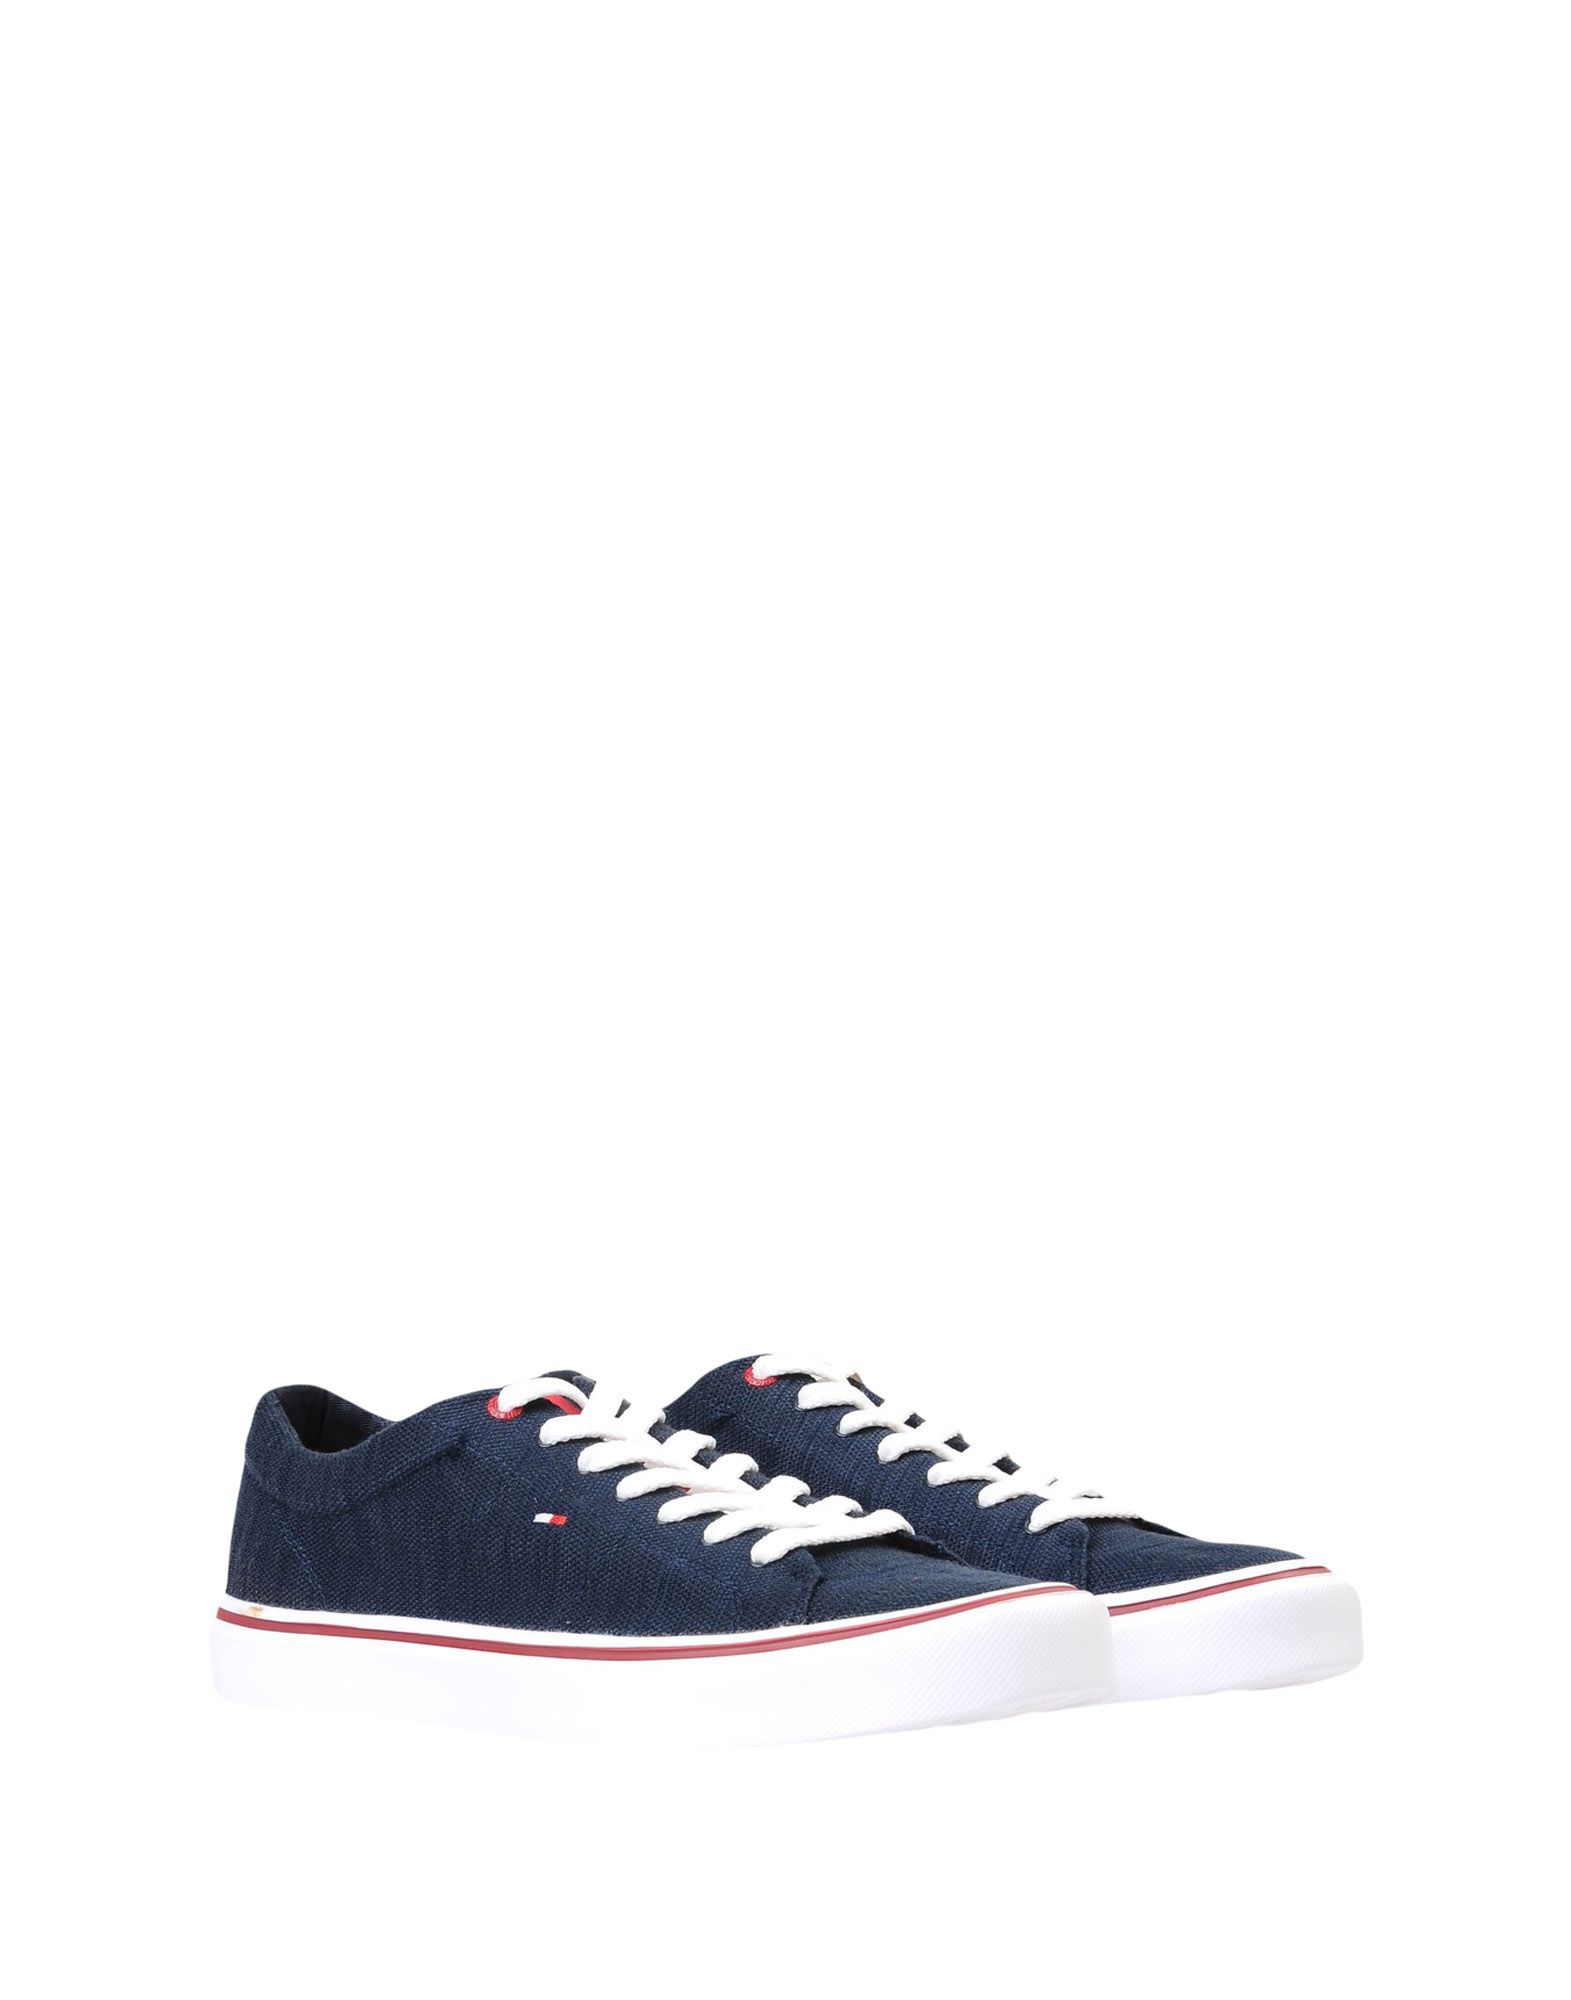 Sneakers Tommy Hilfiger Lightweight Knit Sneaker - Homme - Sneakers Tommy Hilfiger sur